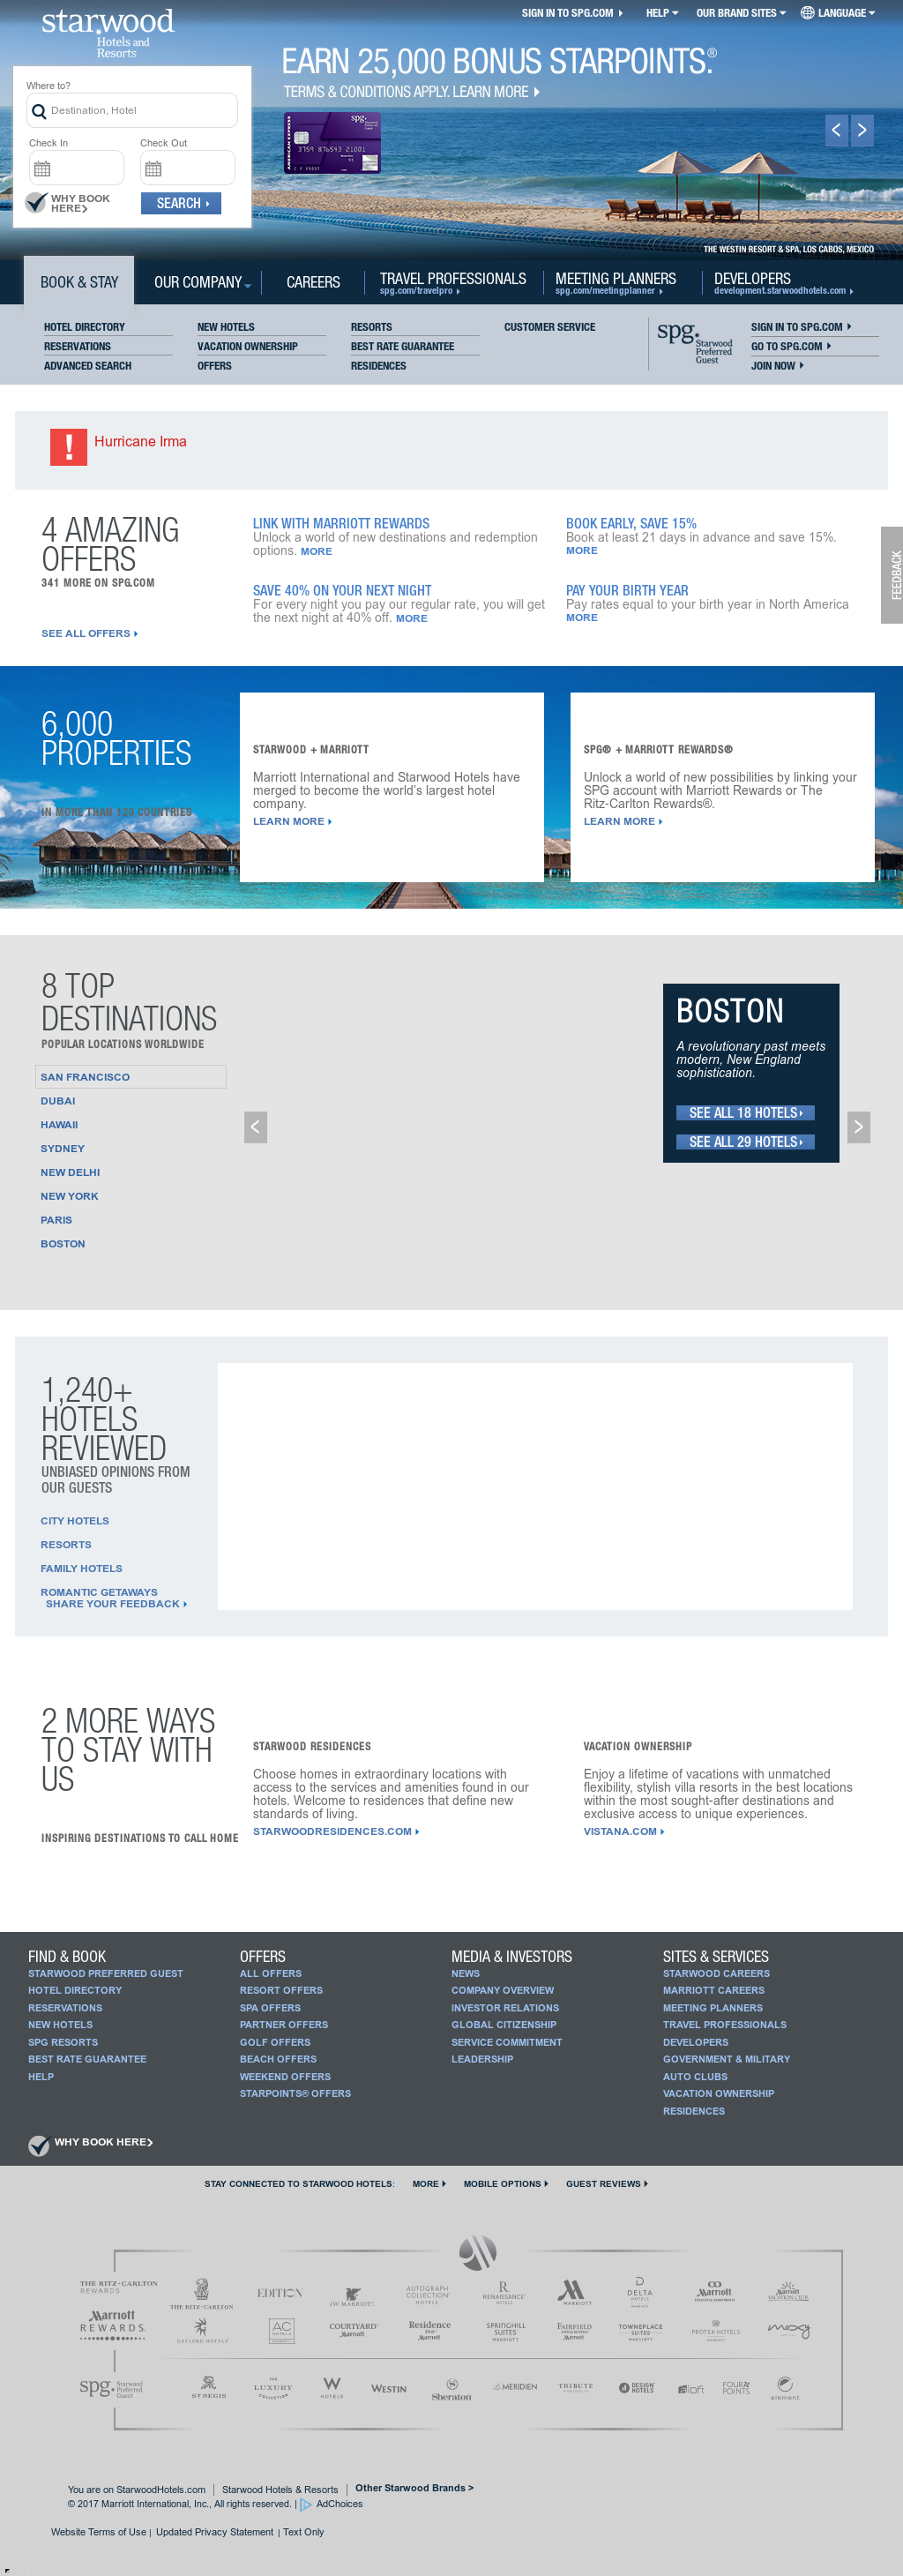 starwood hotel profile View past media spend, key contact information, the agency of record, and more for starwood hotels & resorts worldwide, inc, at redbooks.